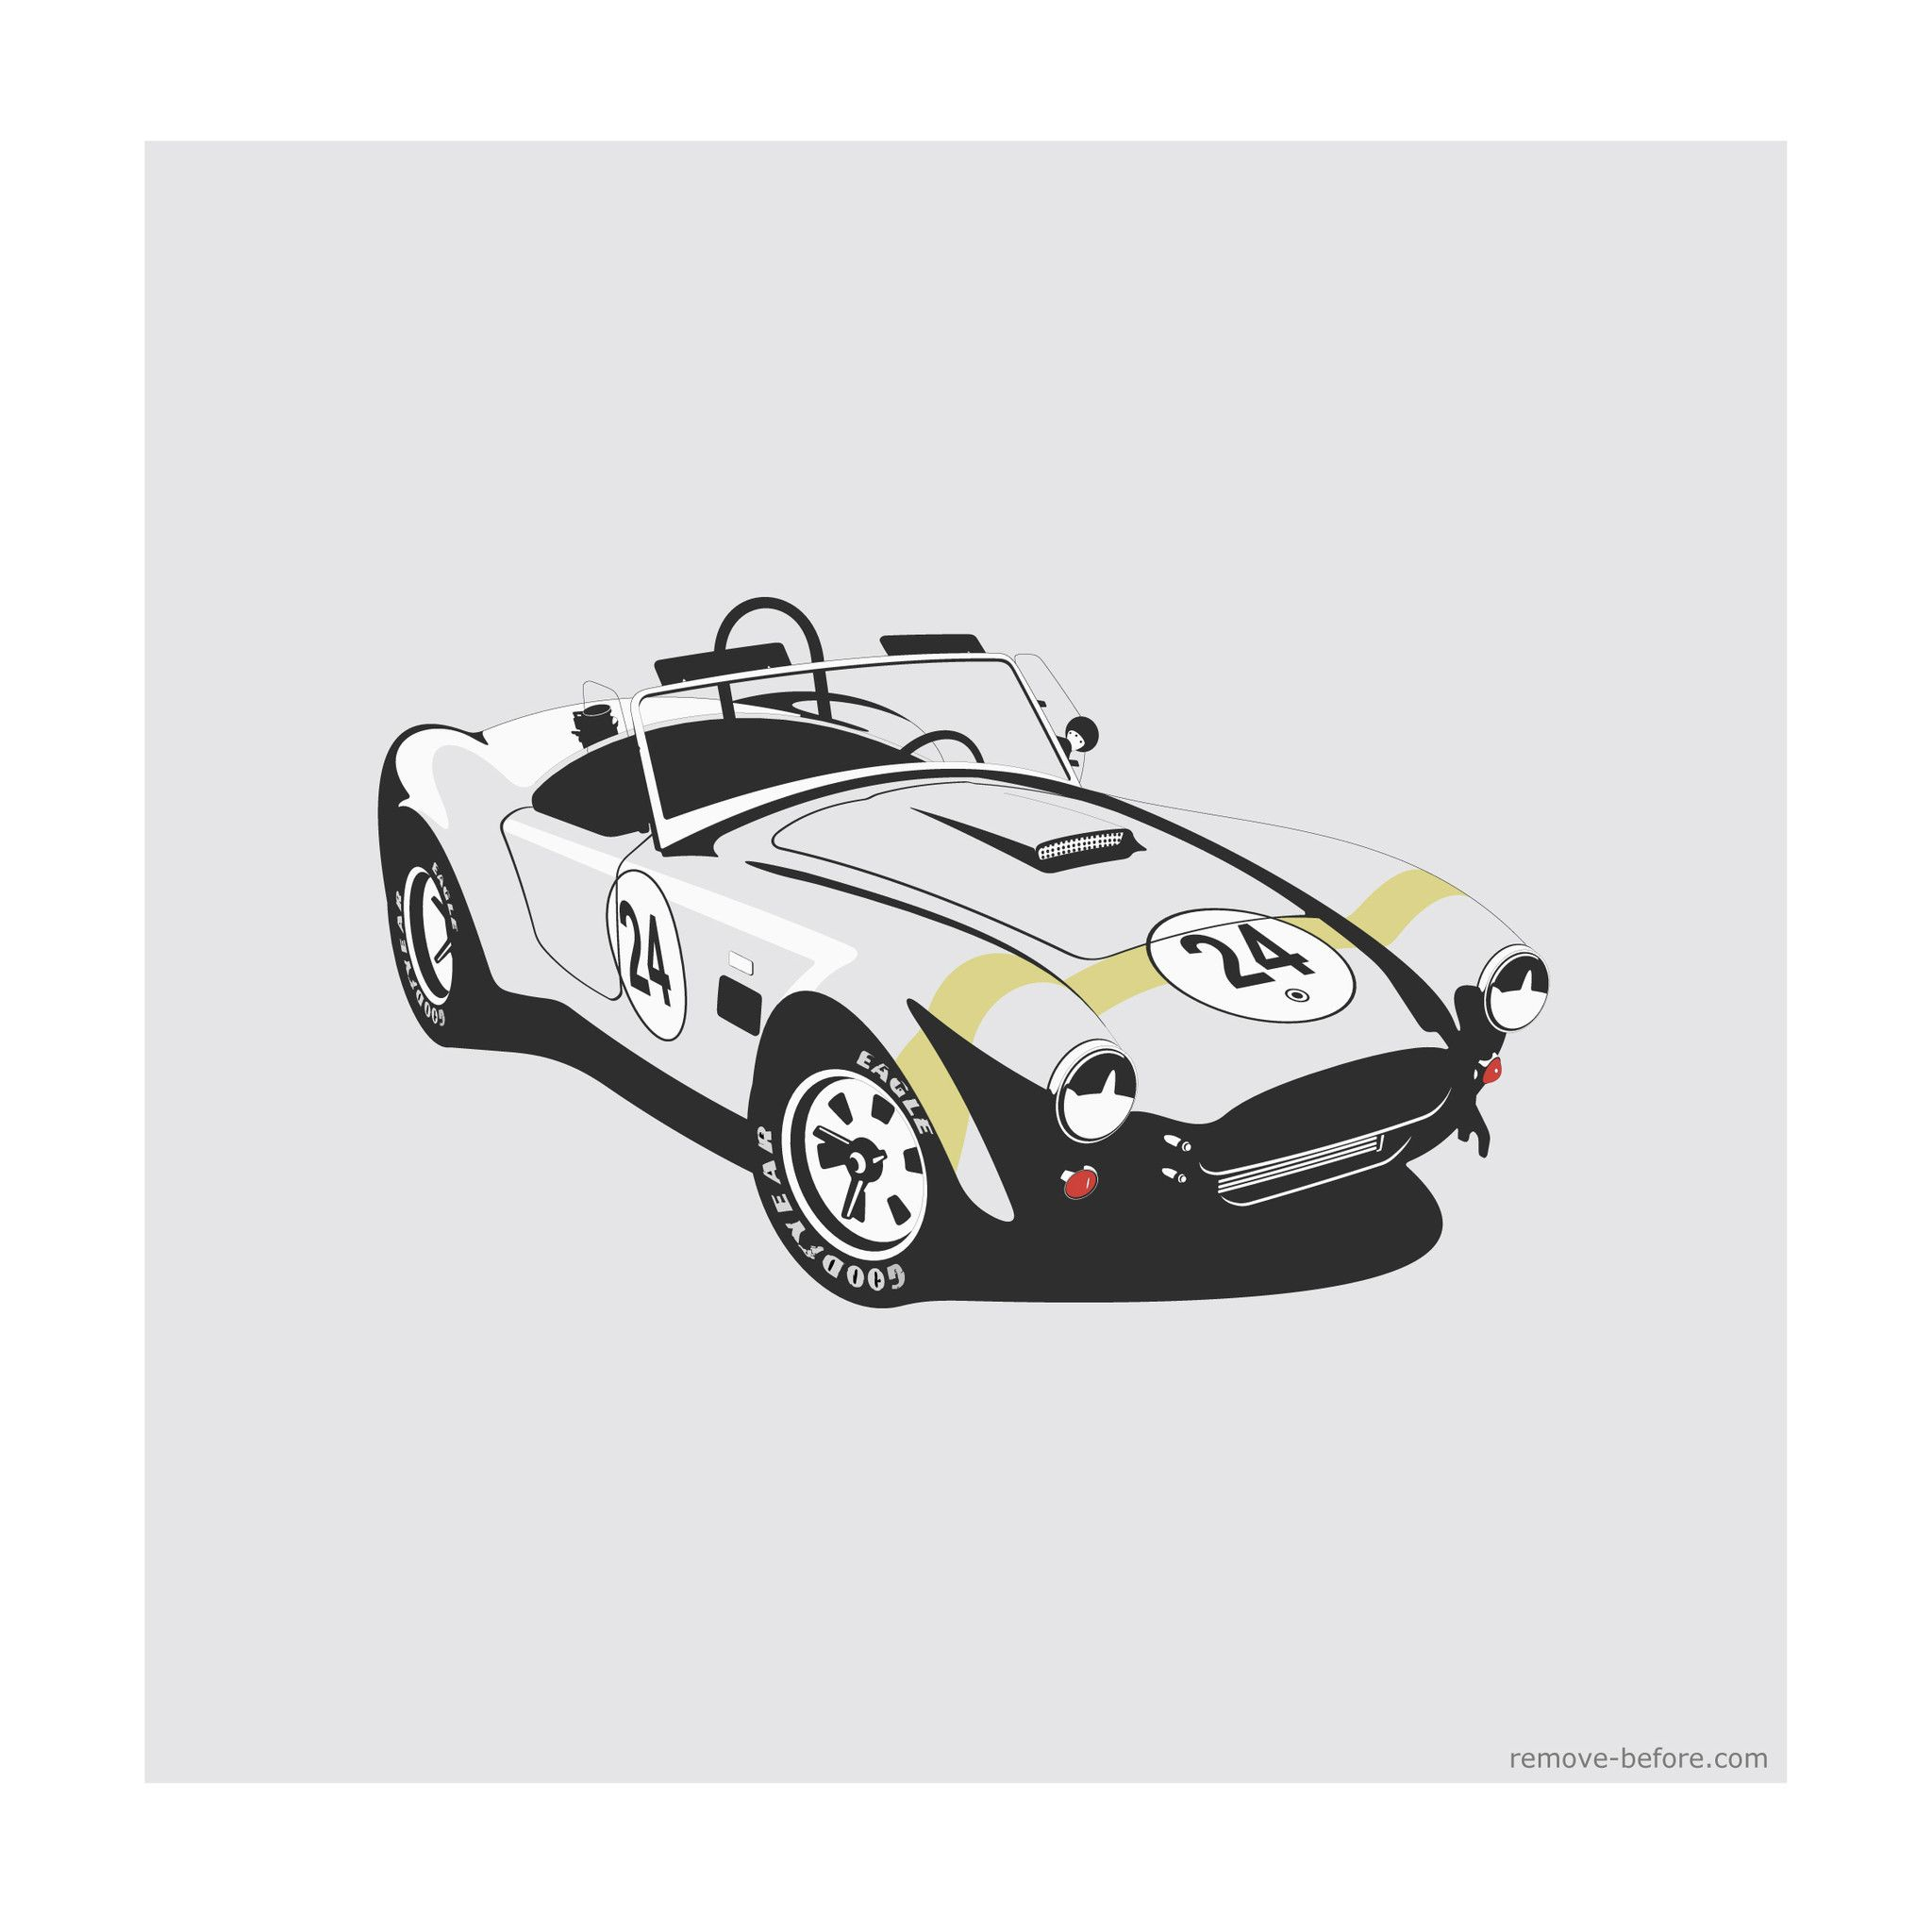 remove before limited edition classic car print shelby cobra car artwork